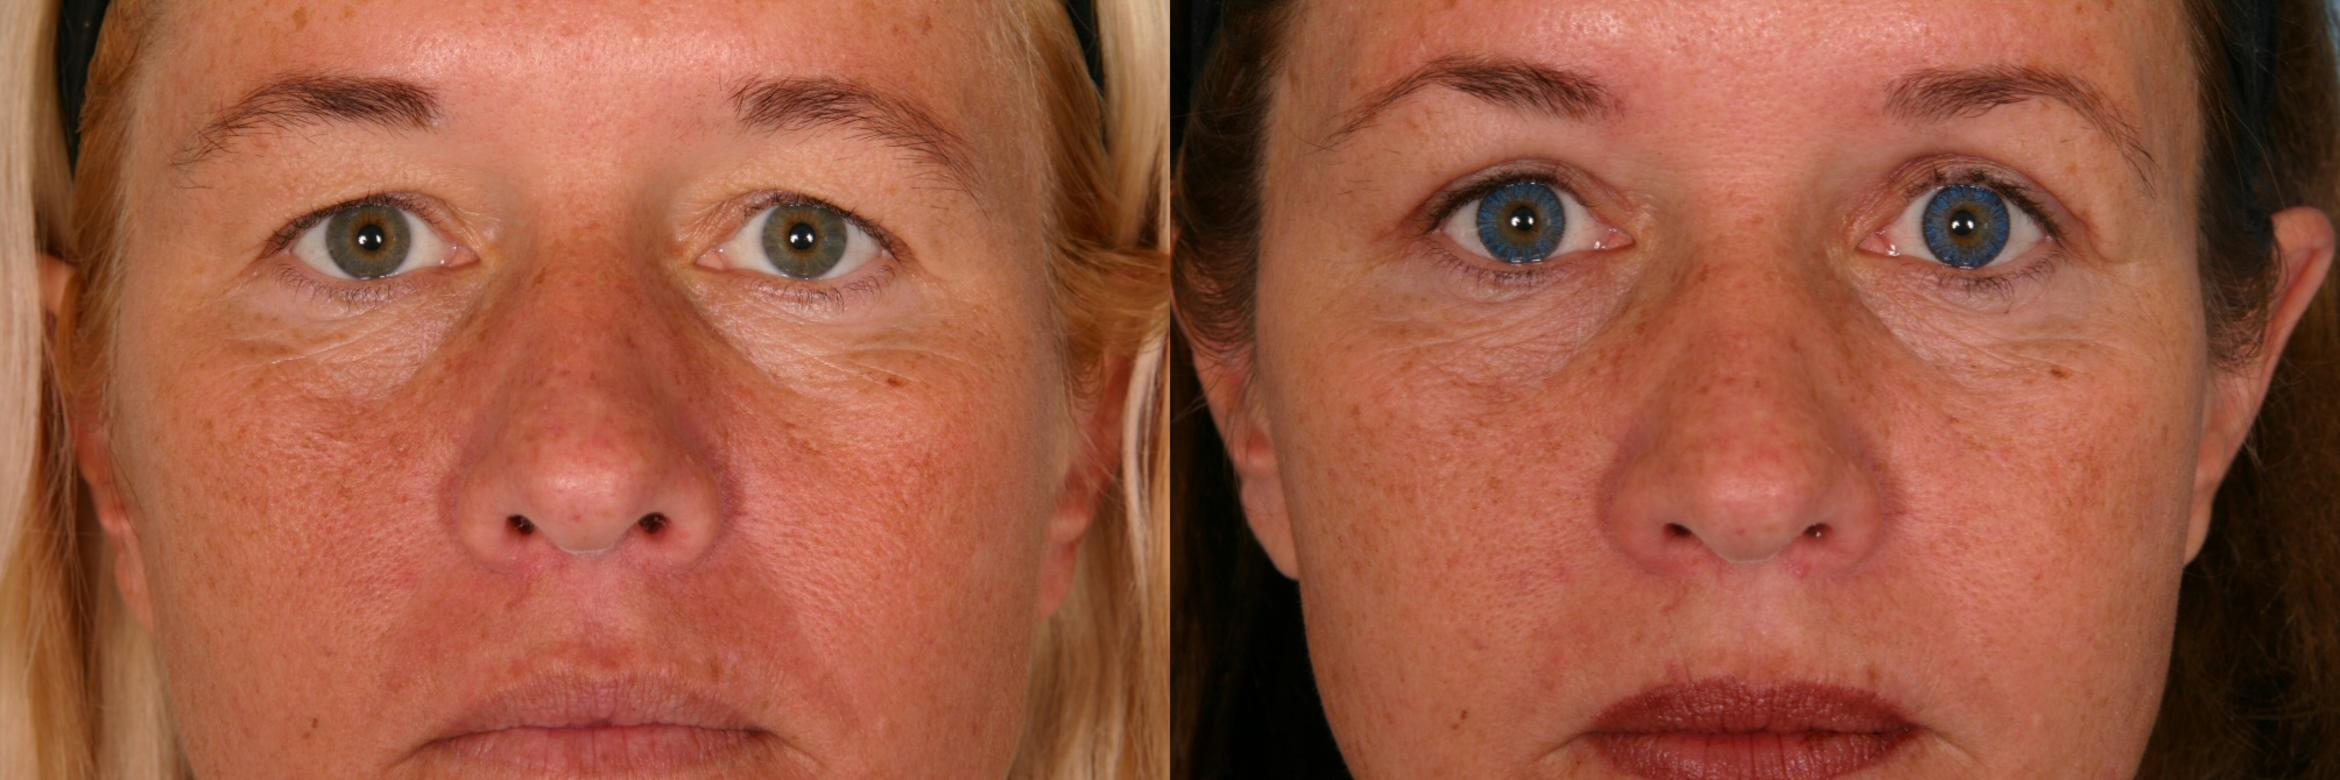 Eyelid Lift (Blepharoplasty) Case 51 Before & After View #1 | Naples, FL | Kent V. Hasen, M.D.